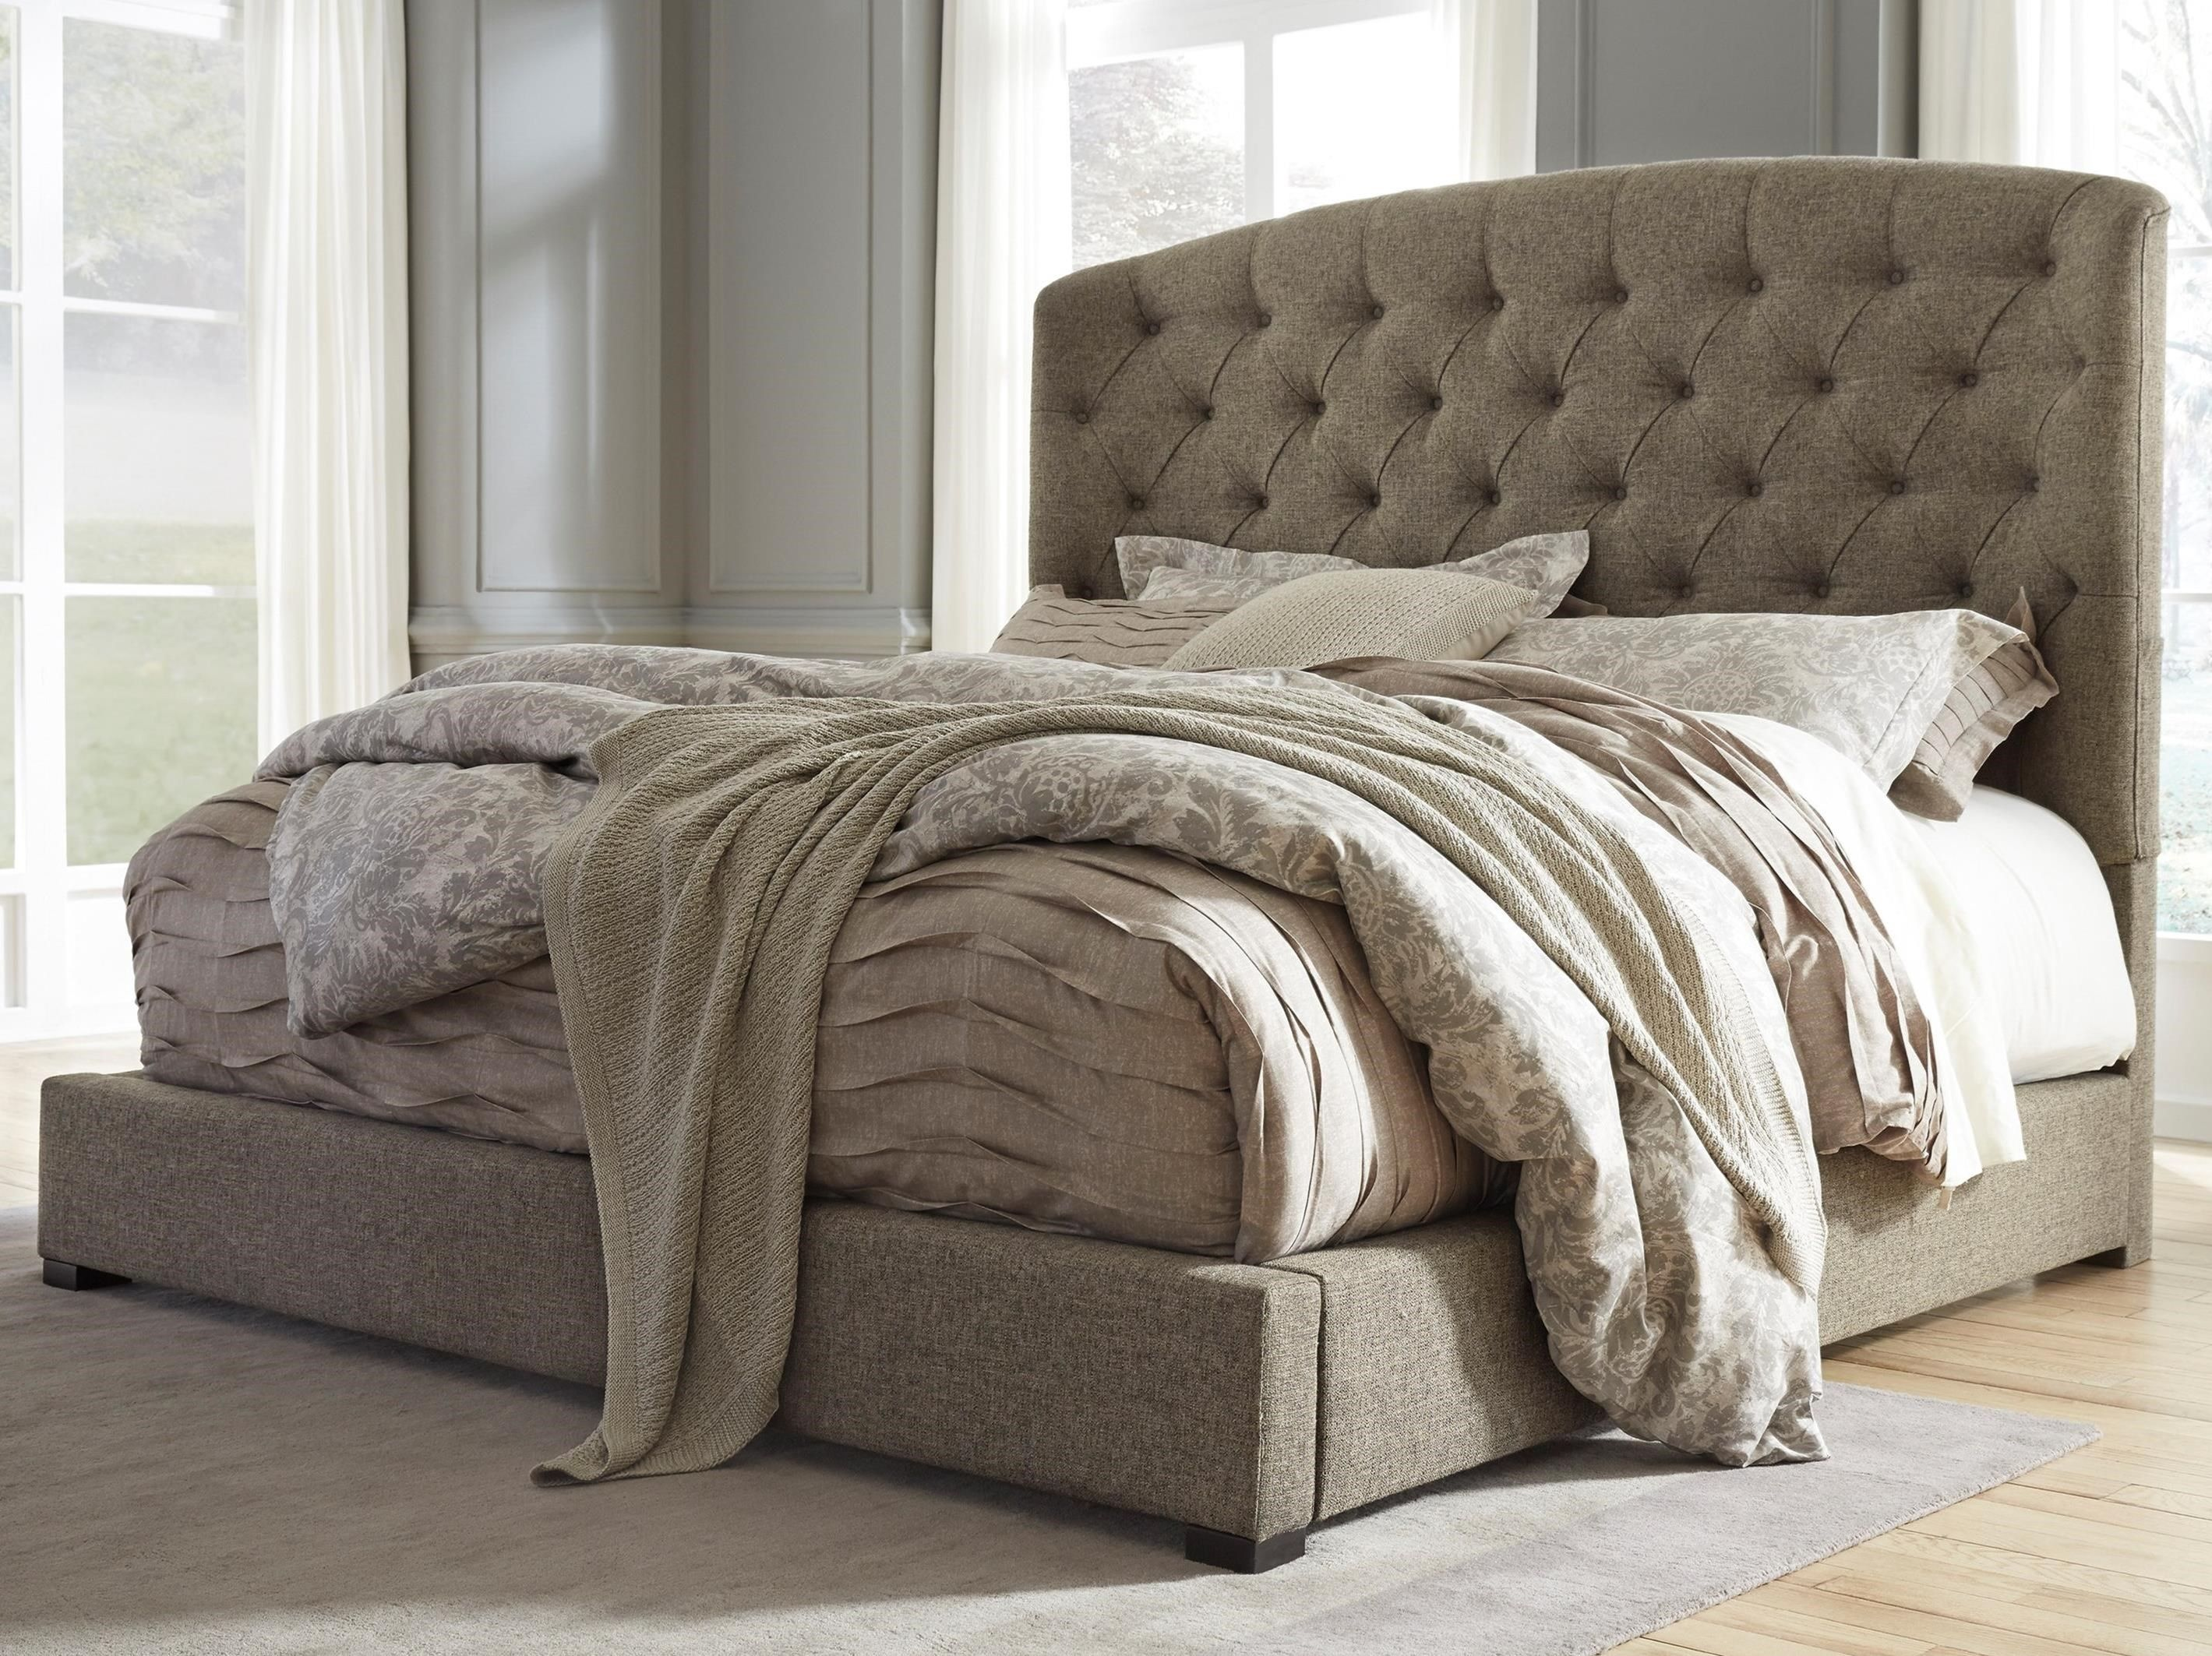 gerlane california king upholstered bed by signature design by ashley